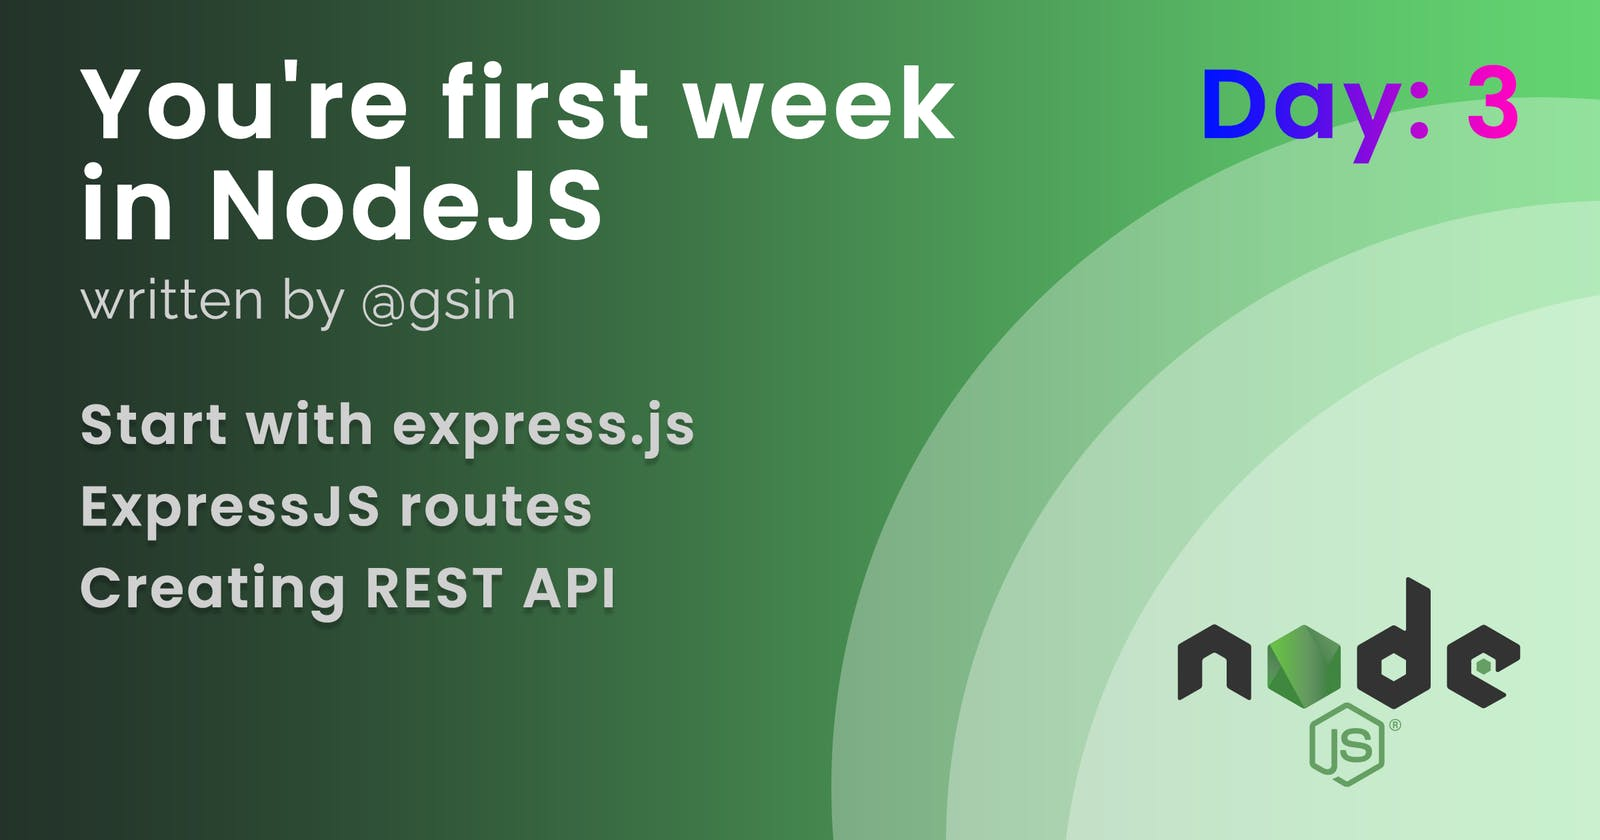 Day 3 - Your first week in NodeJS